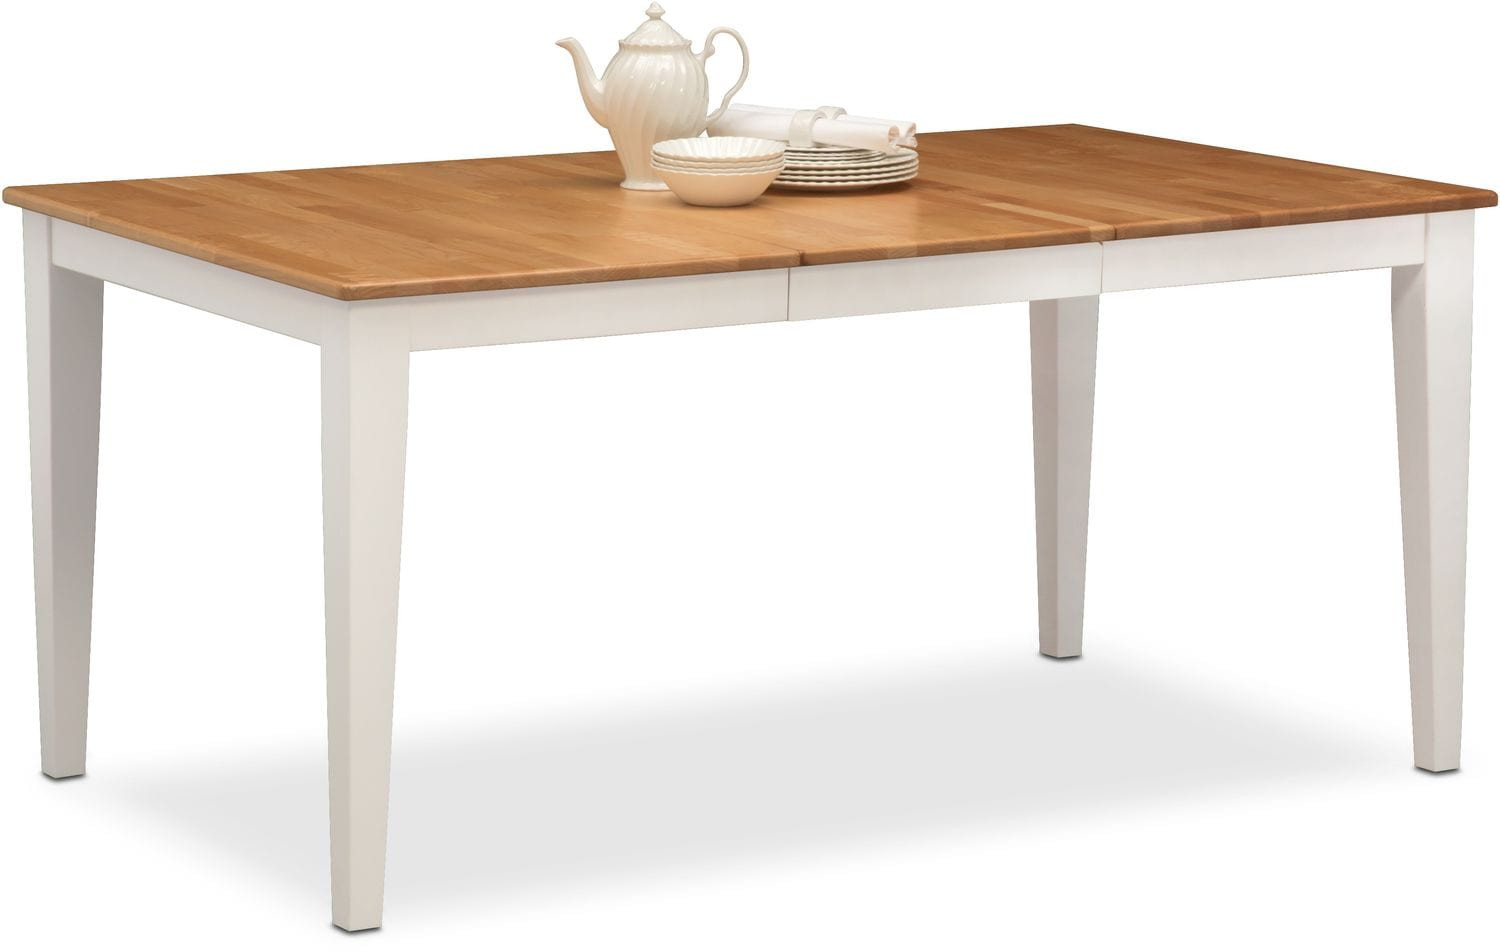 Genial Dining Room Furniture   Nantucket Table   Maple And White